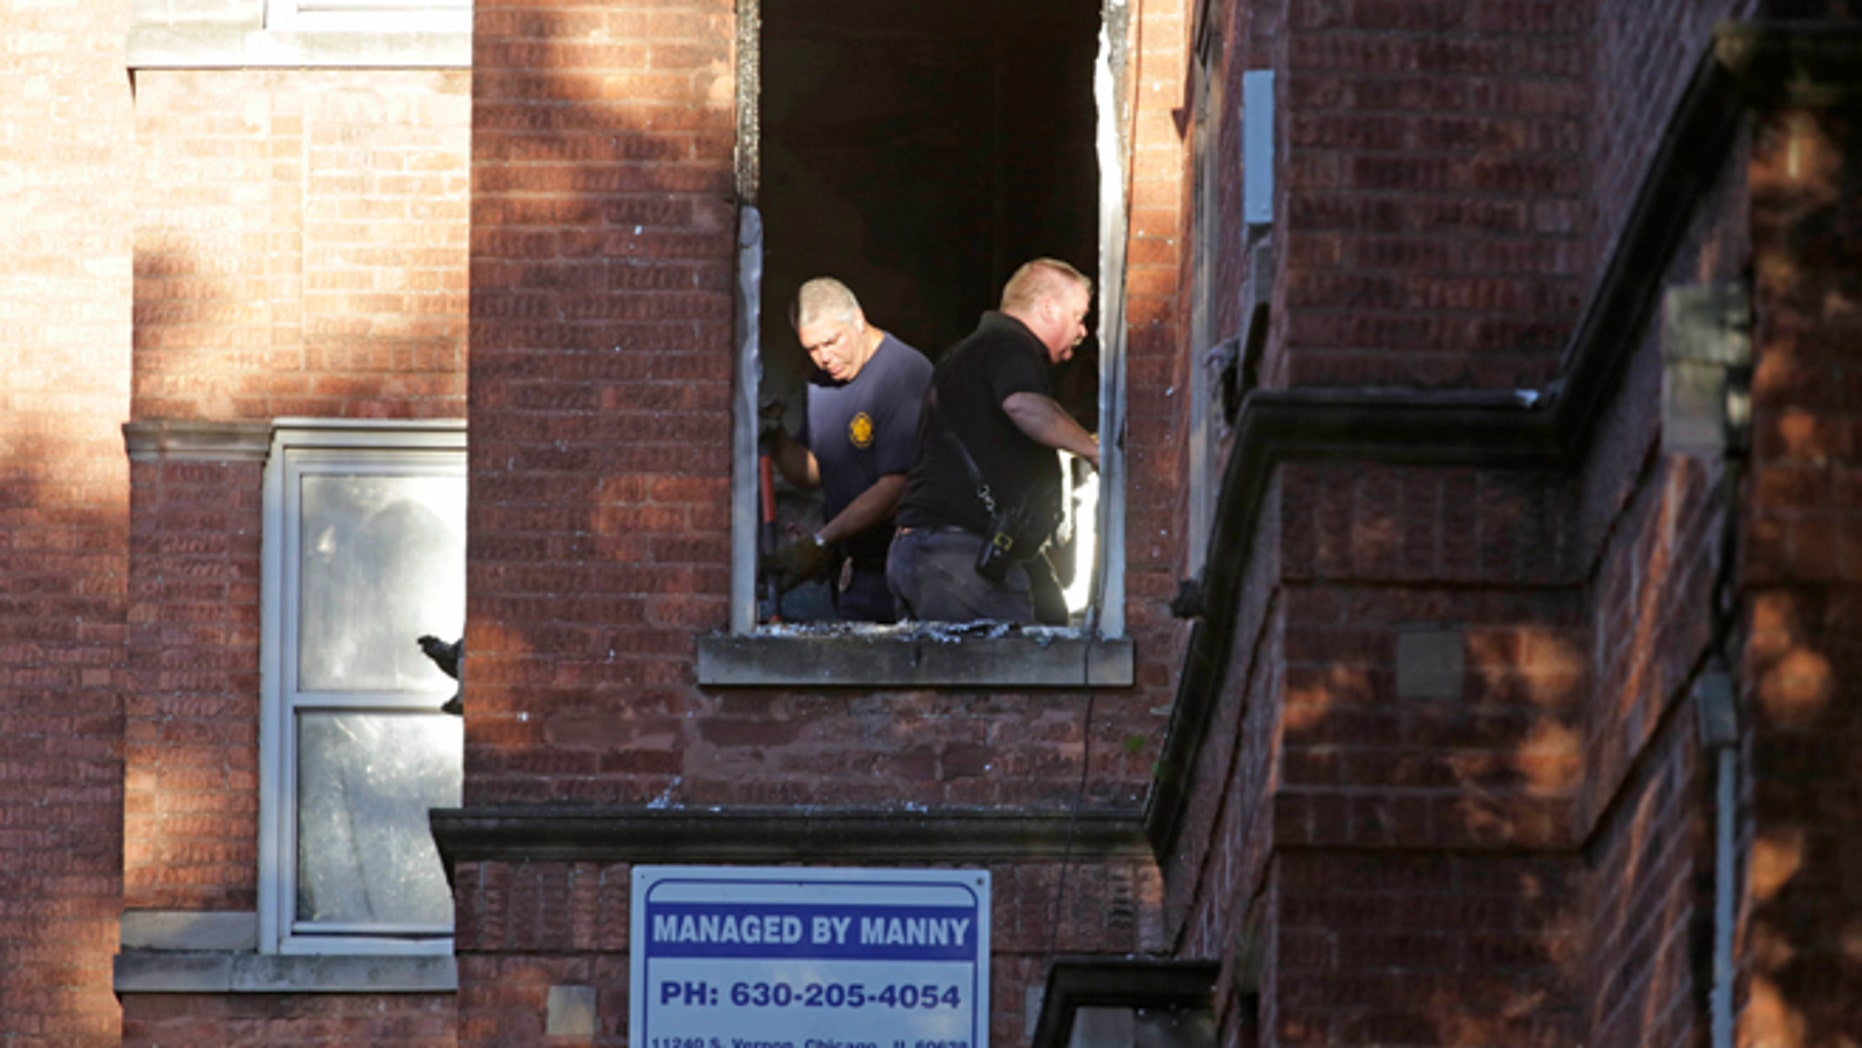 Sept. 8, 2014: Fire marshals sift through debris in an apartment building where four children died in an early morning fire in Chicago. (AP)